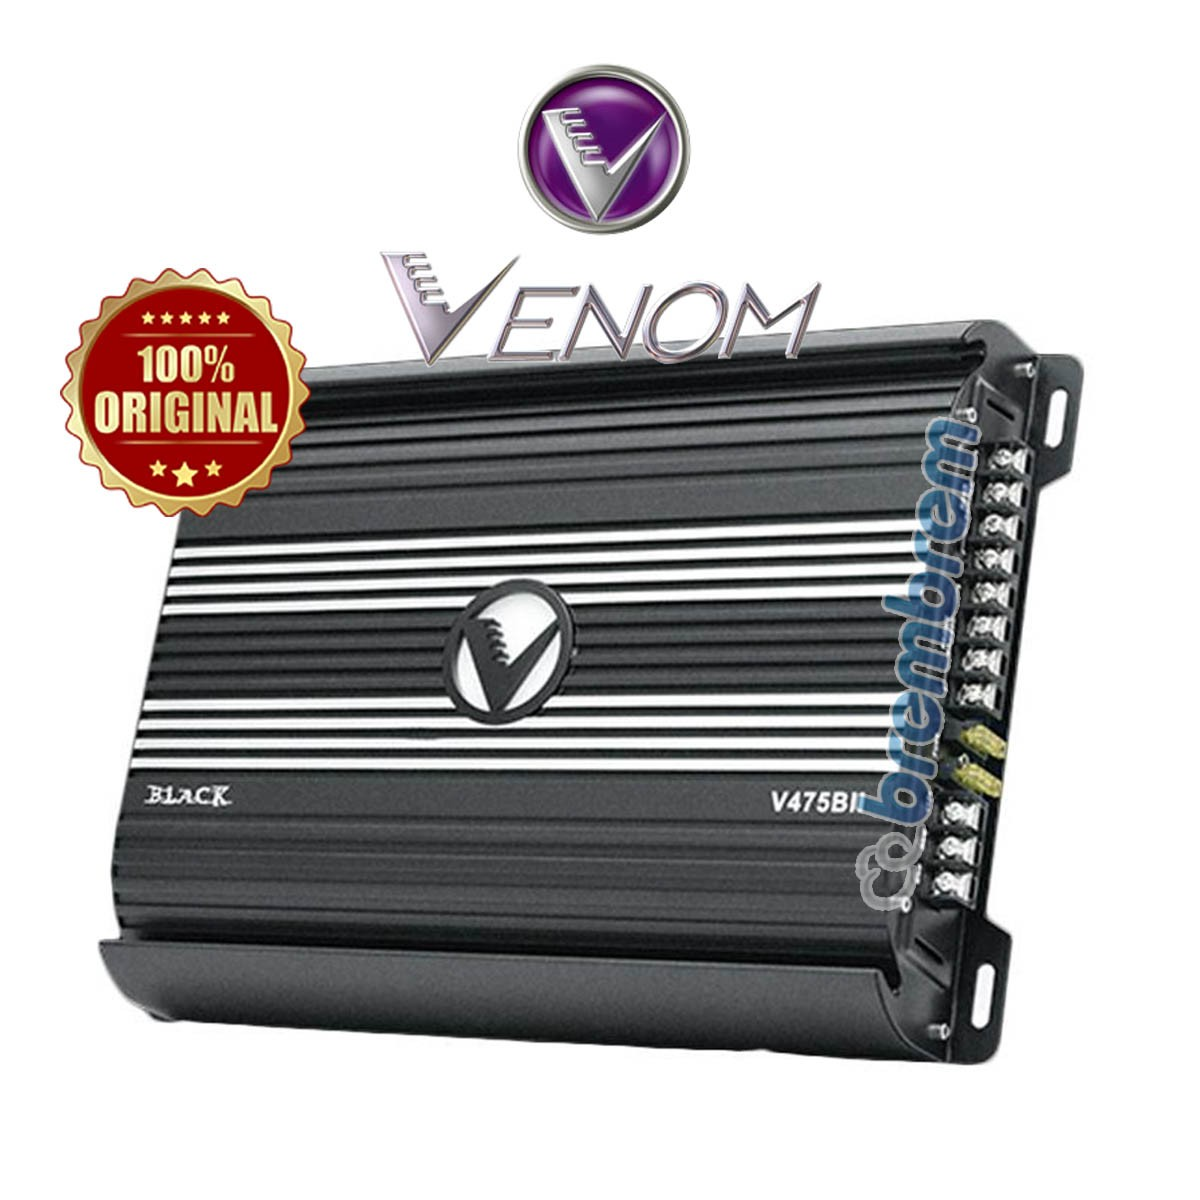 VENOM BLACK SERIES V475BII - POWER 4 CHANNEL